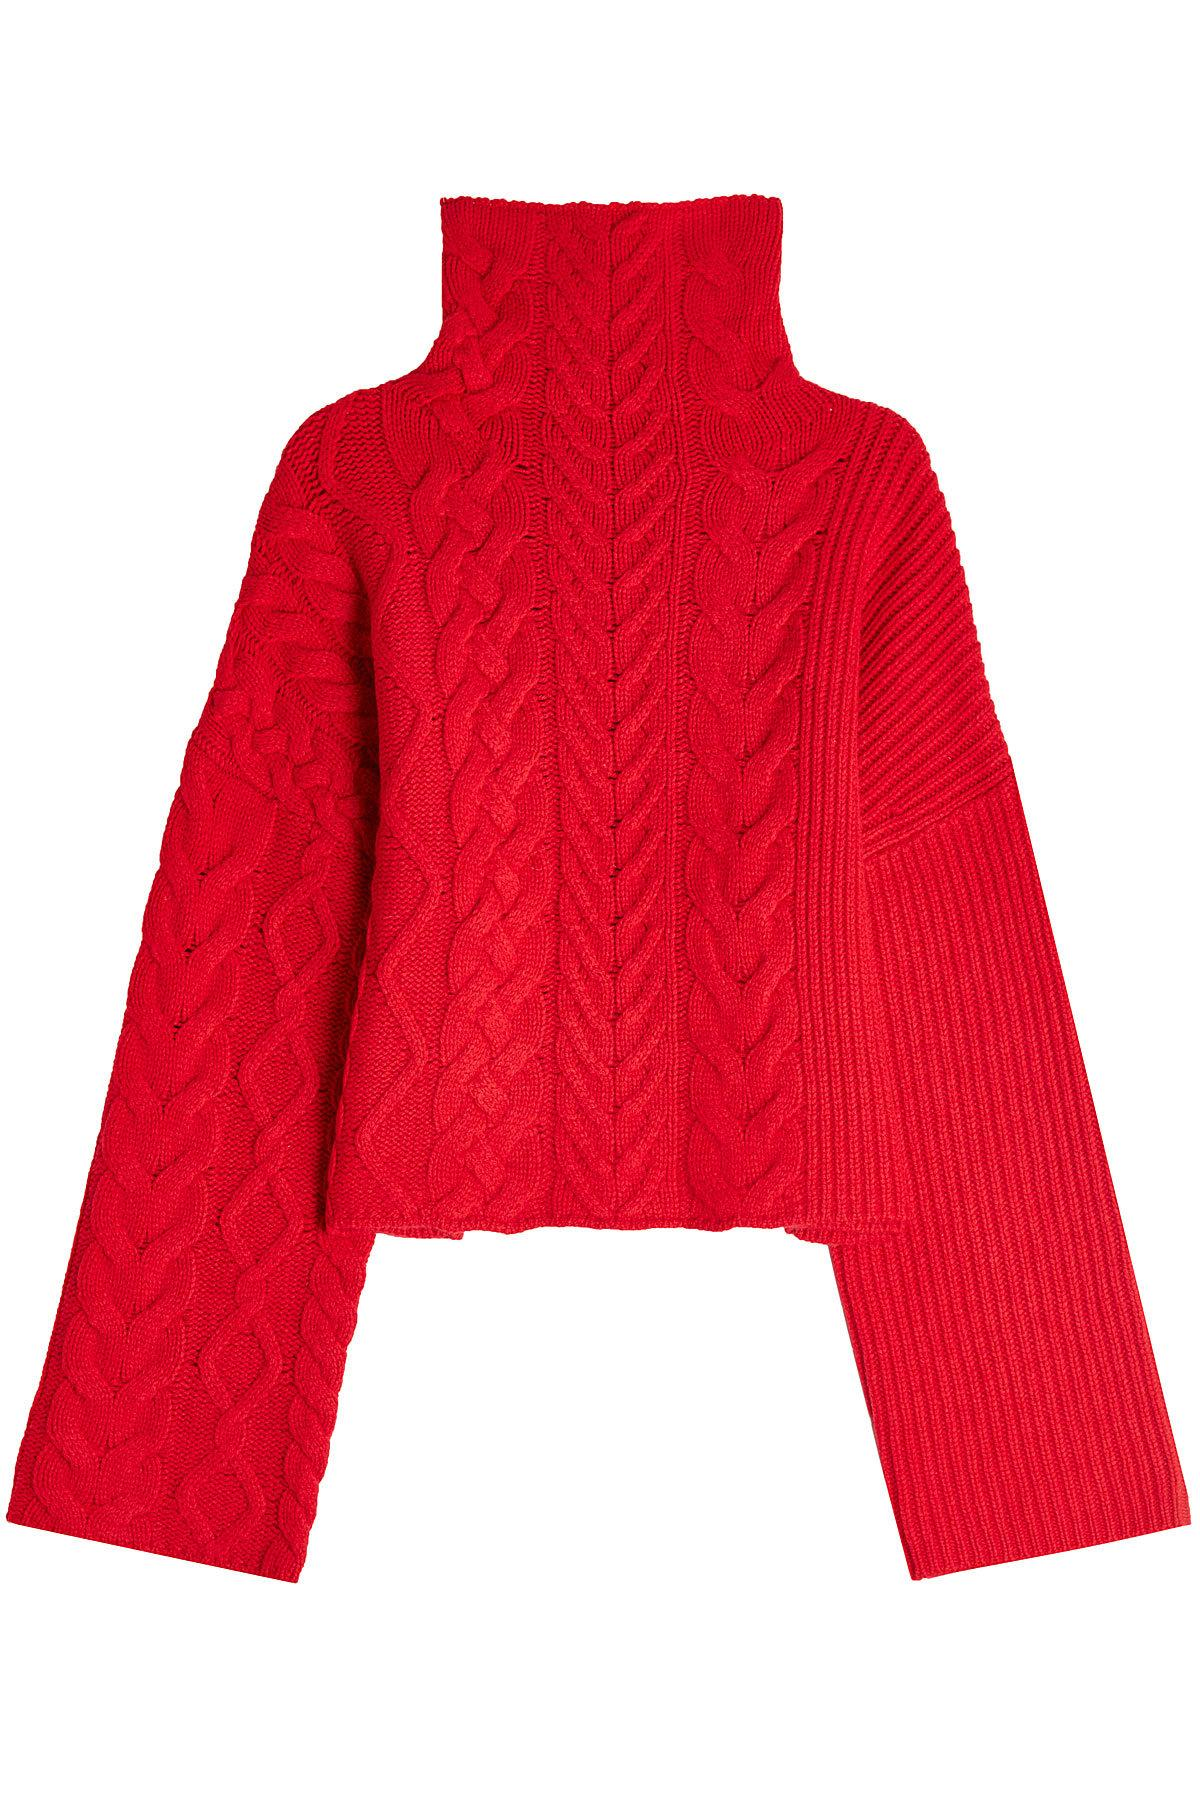 Zadig & Voltaire Wool Turtleneck Pullover In Red